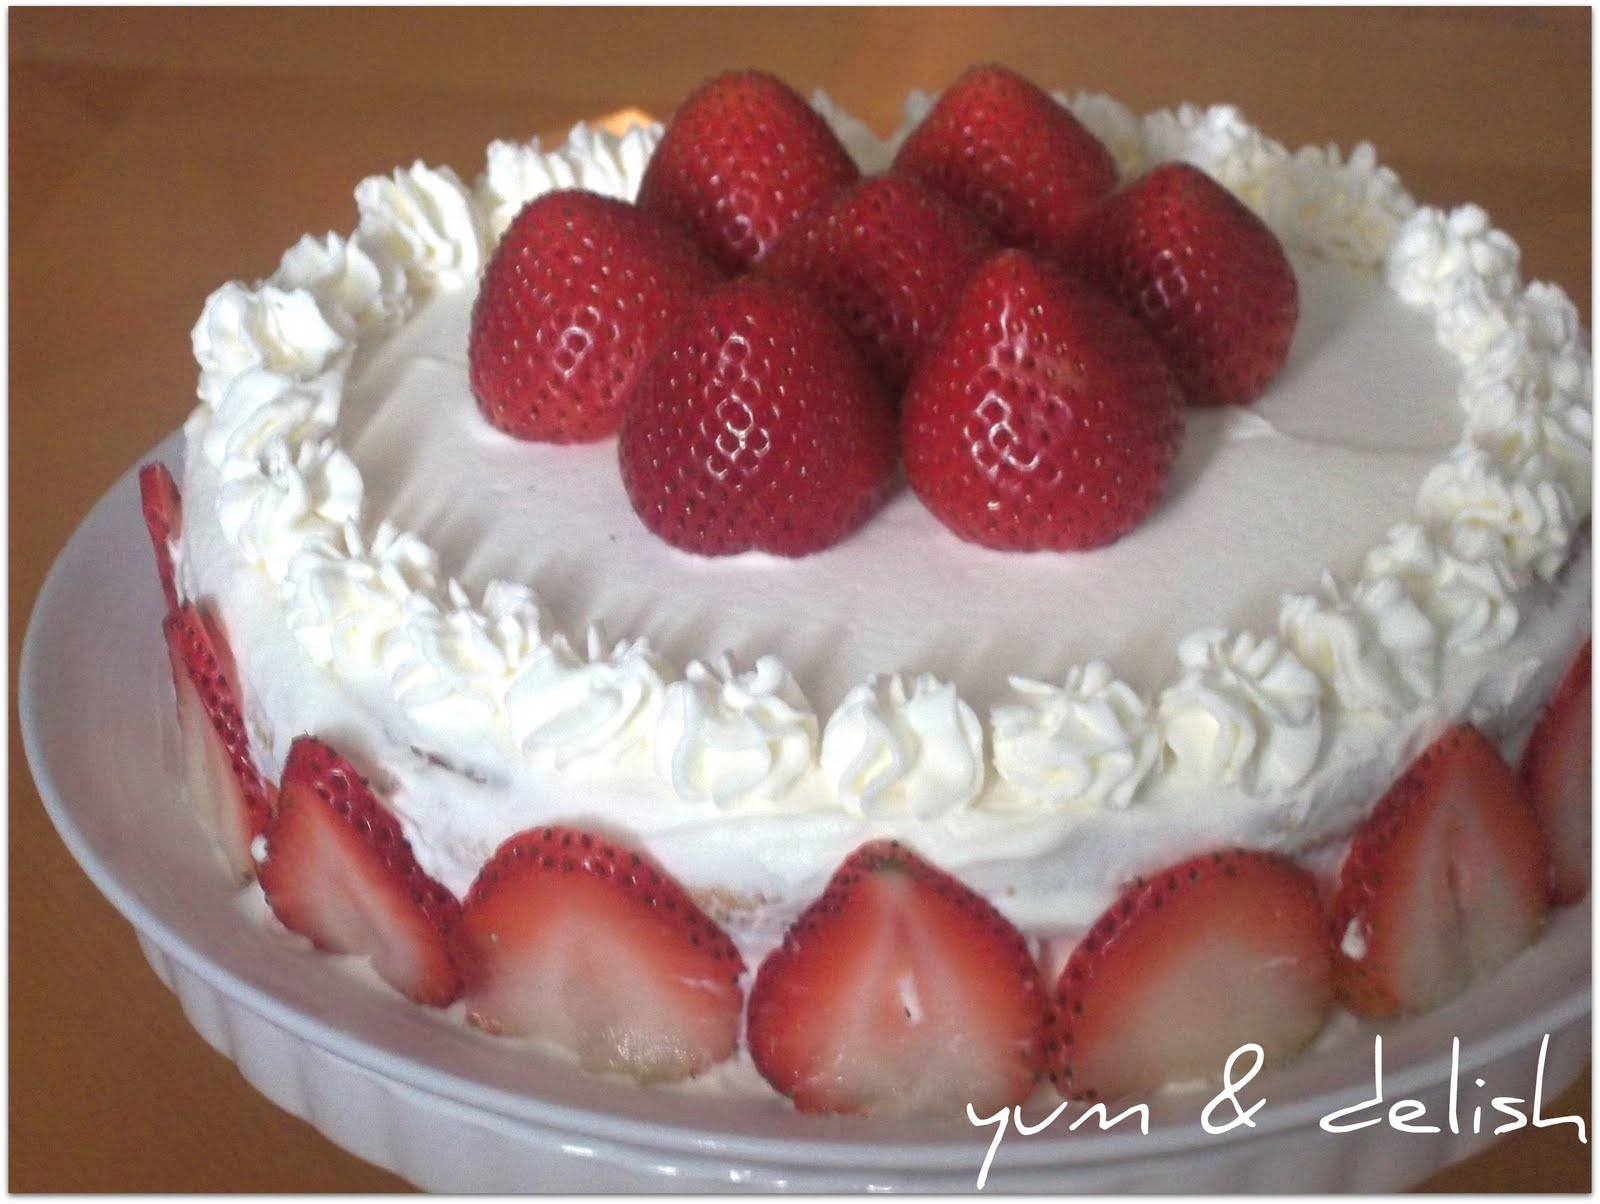 ... cream elves strawberries and cream pan cake s strawberries and cream